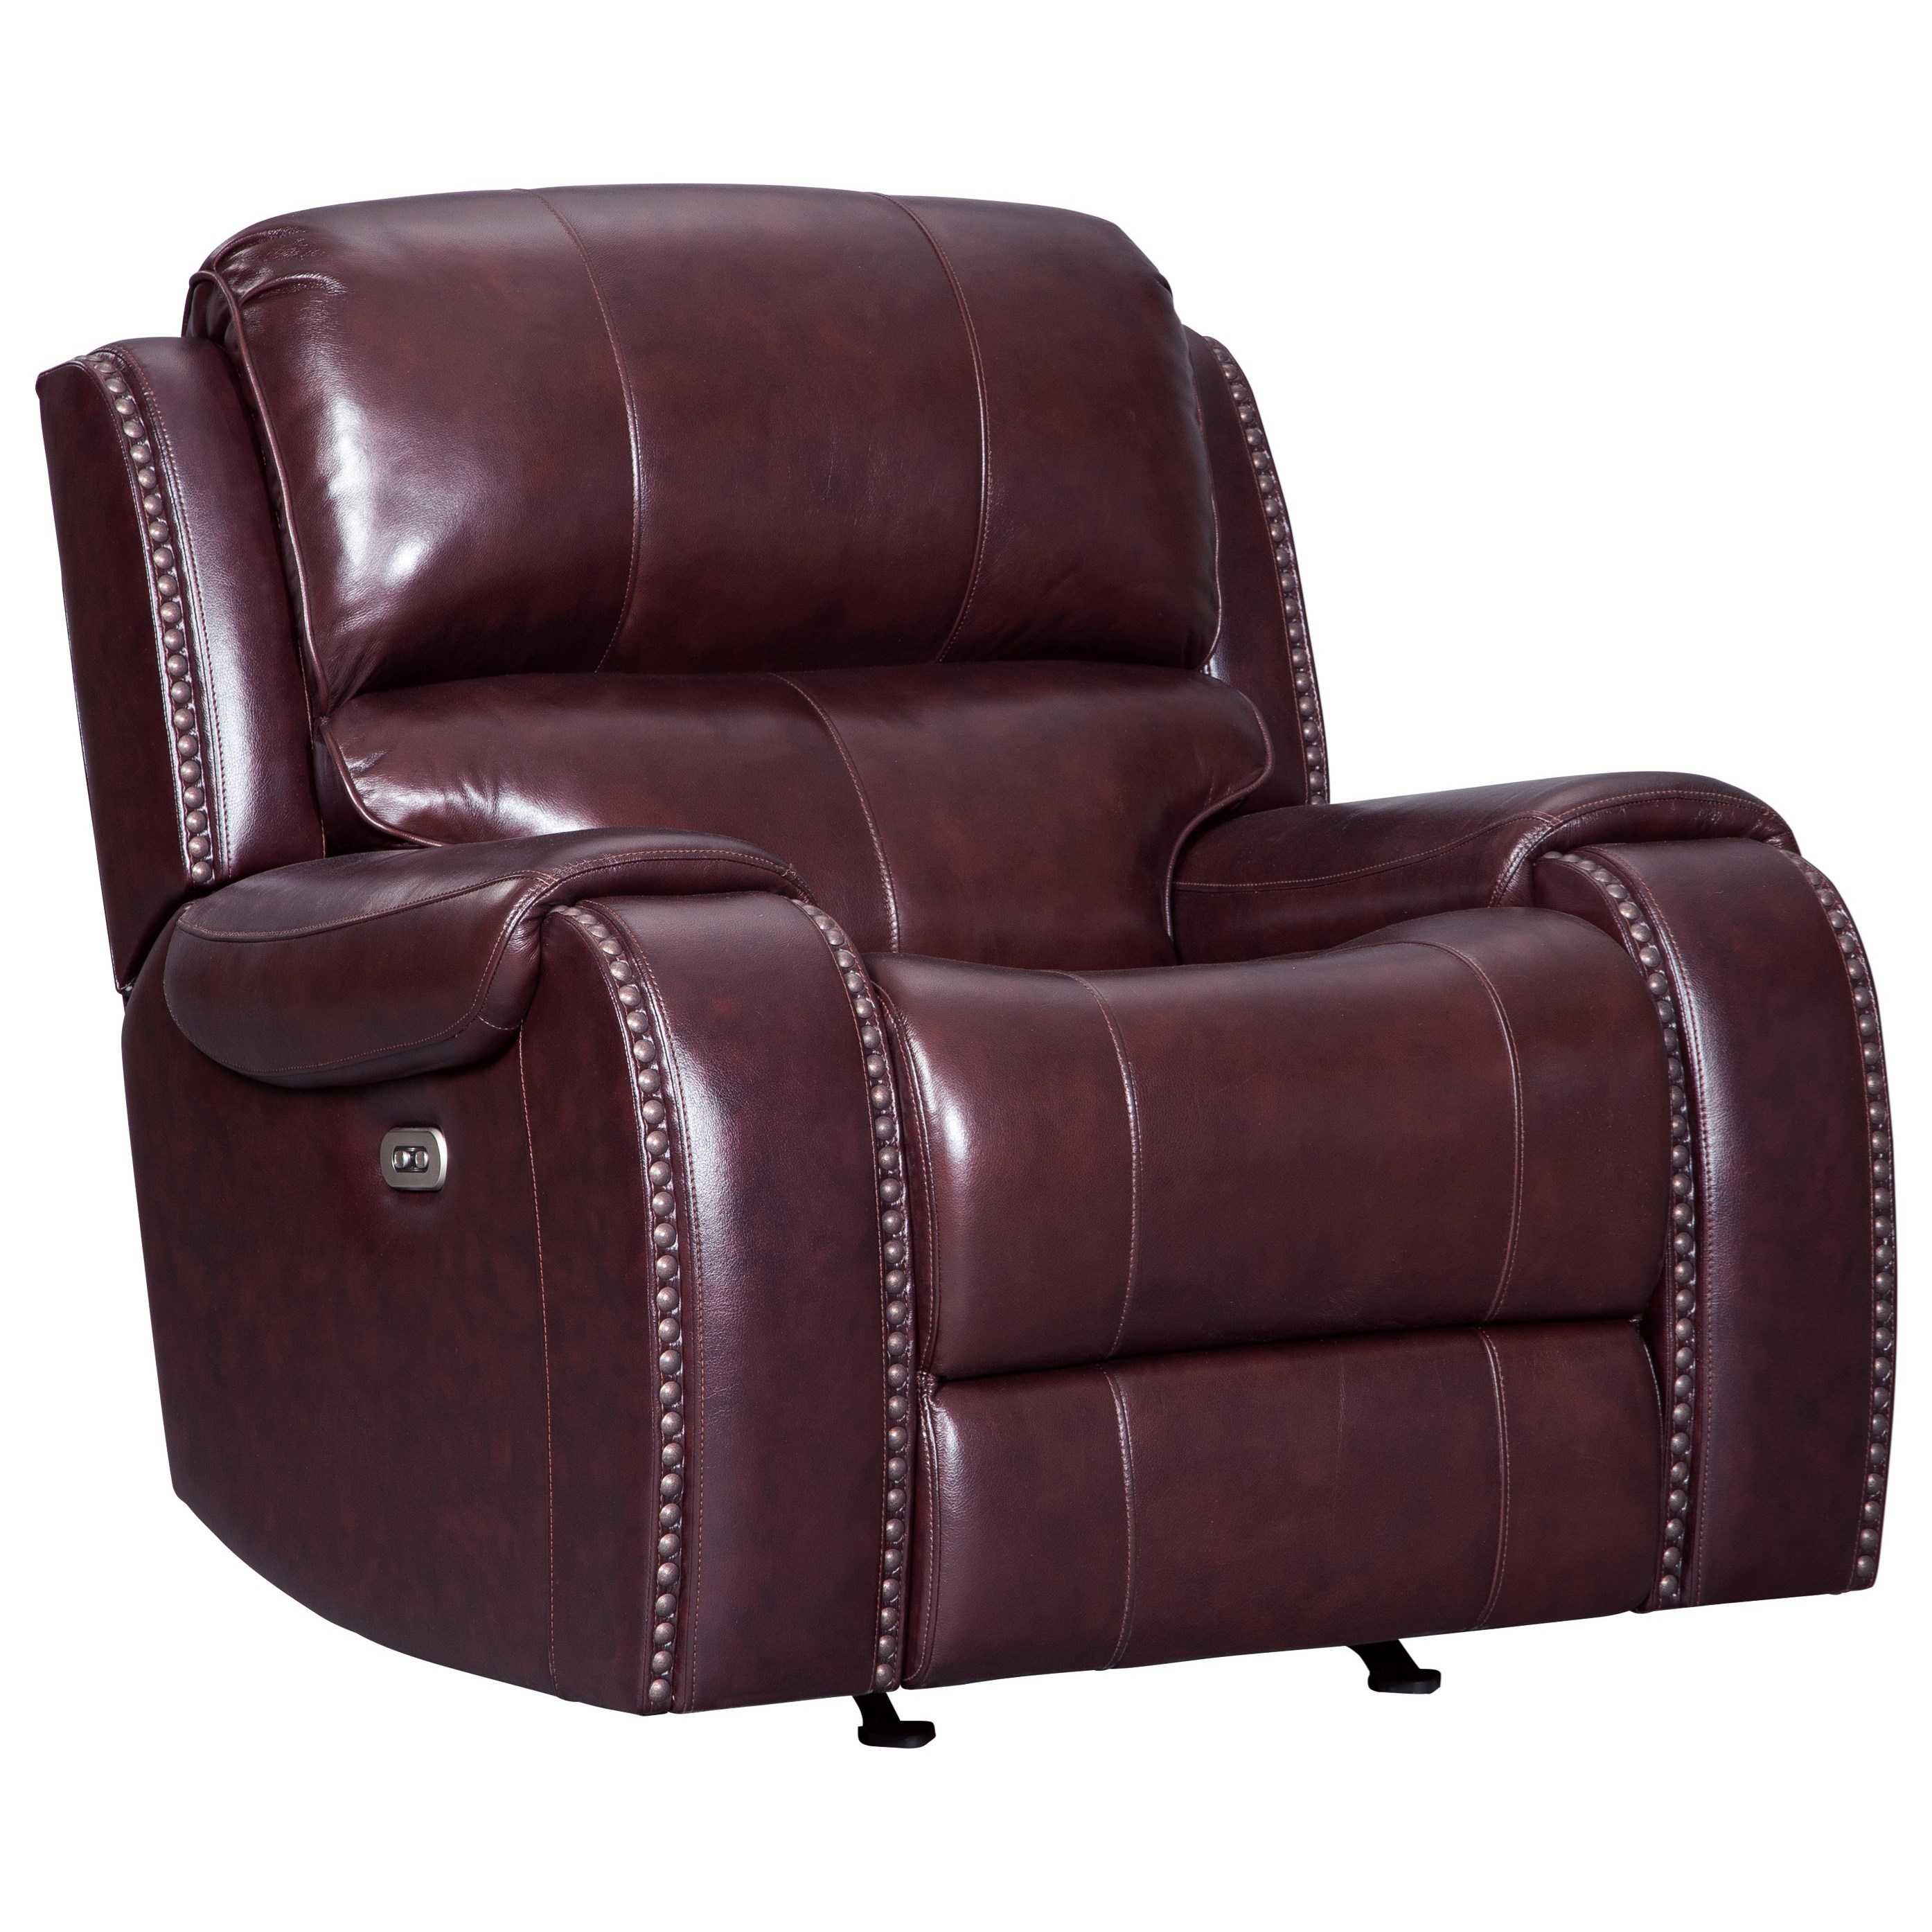 products comforter gabby leg by comfort furniture trim and high with nailhead klaussner recliner wolf design